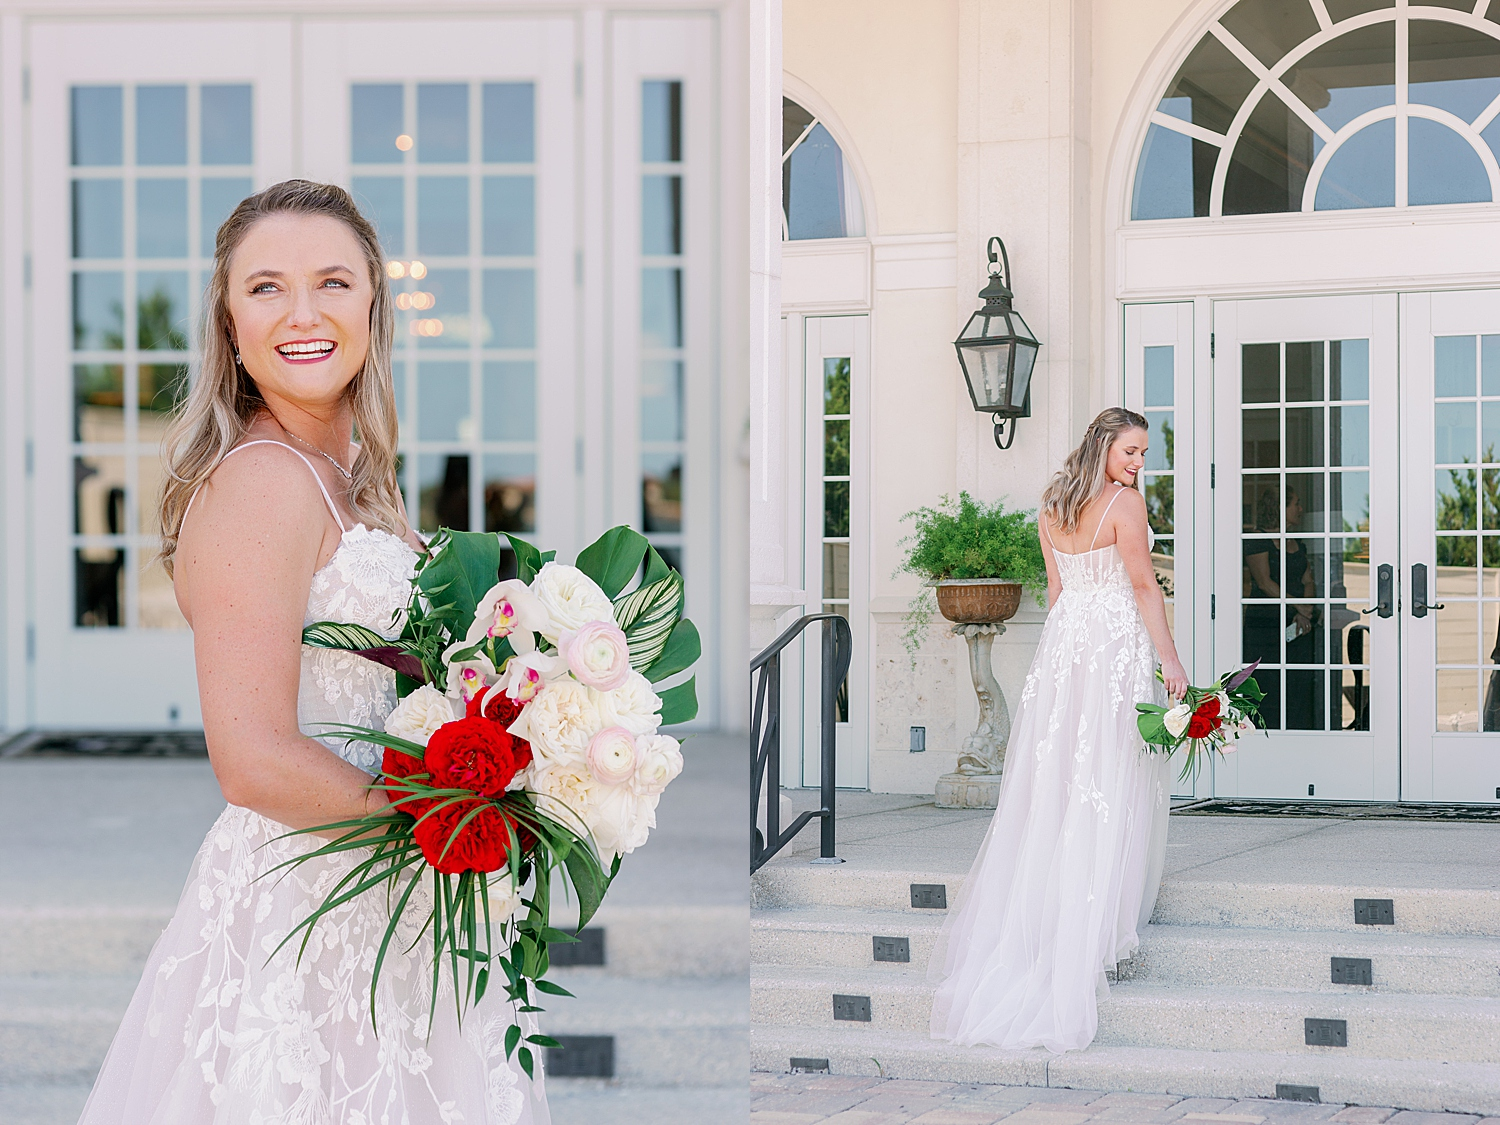 Laughing bridal portraits with tropical bouquet